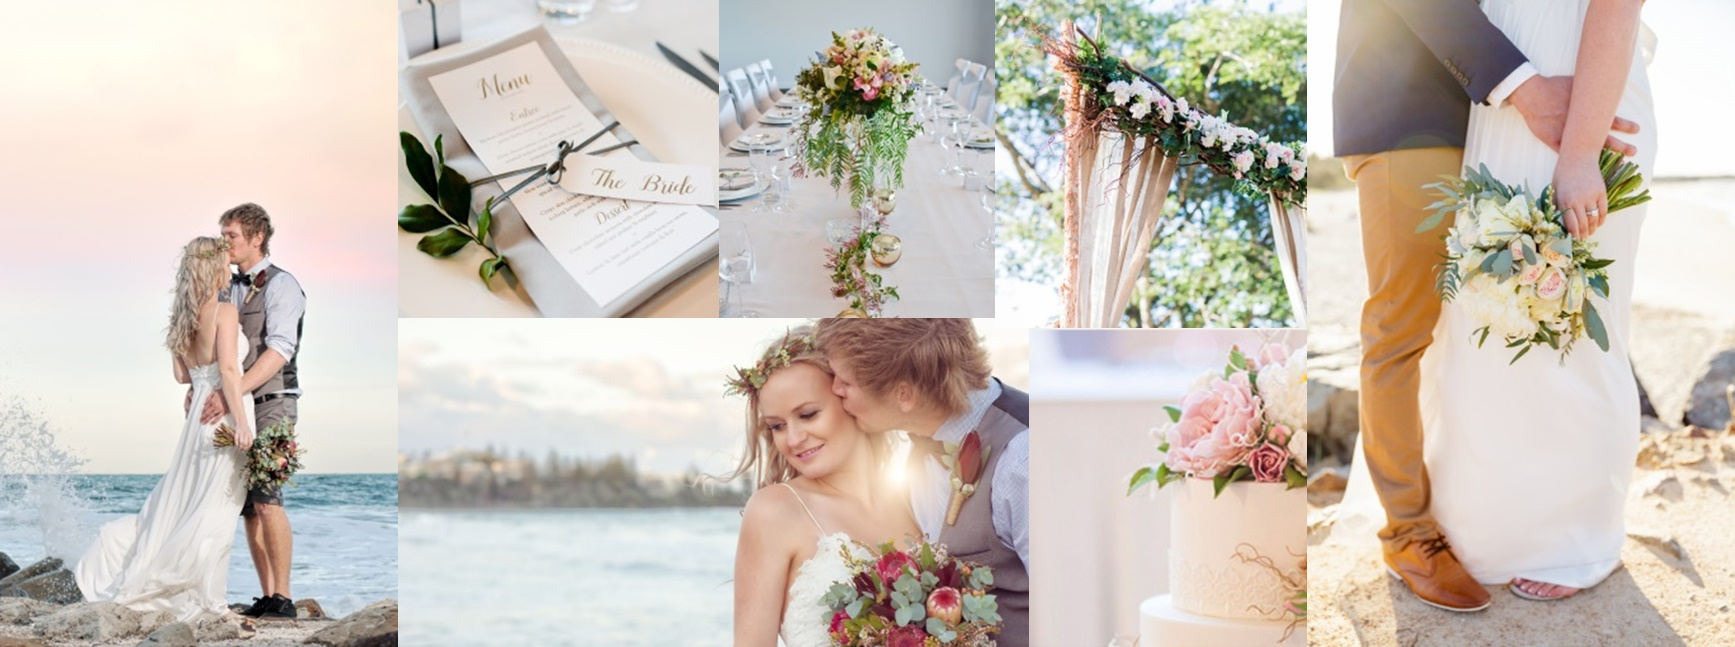 Cloud Nine Weddings Sunshine Coast Wedding Planner